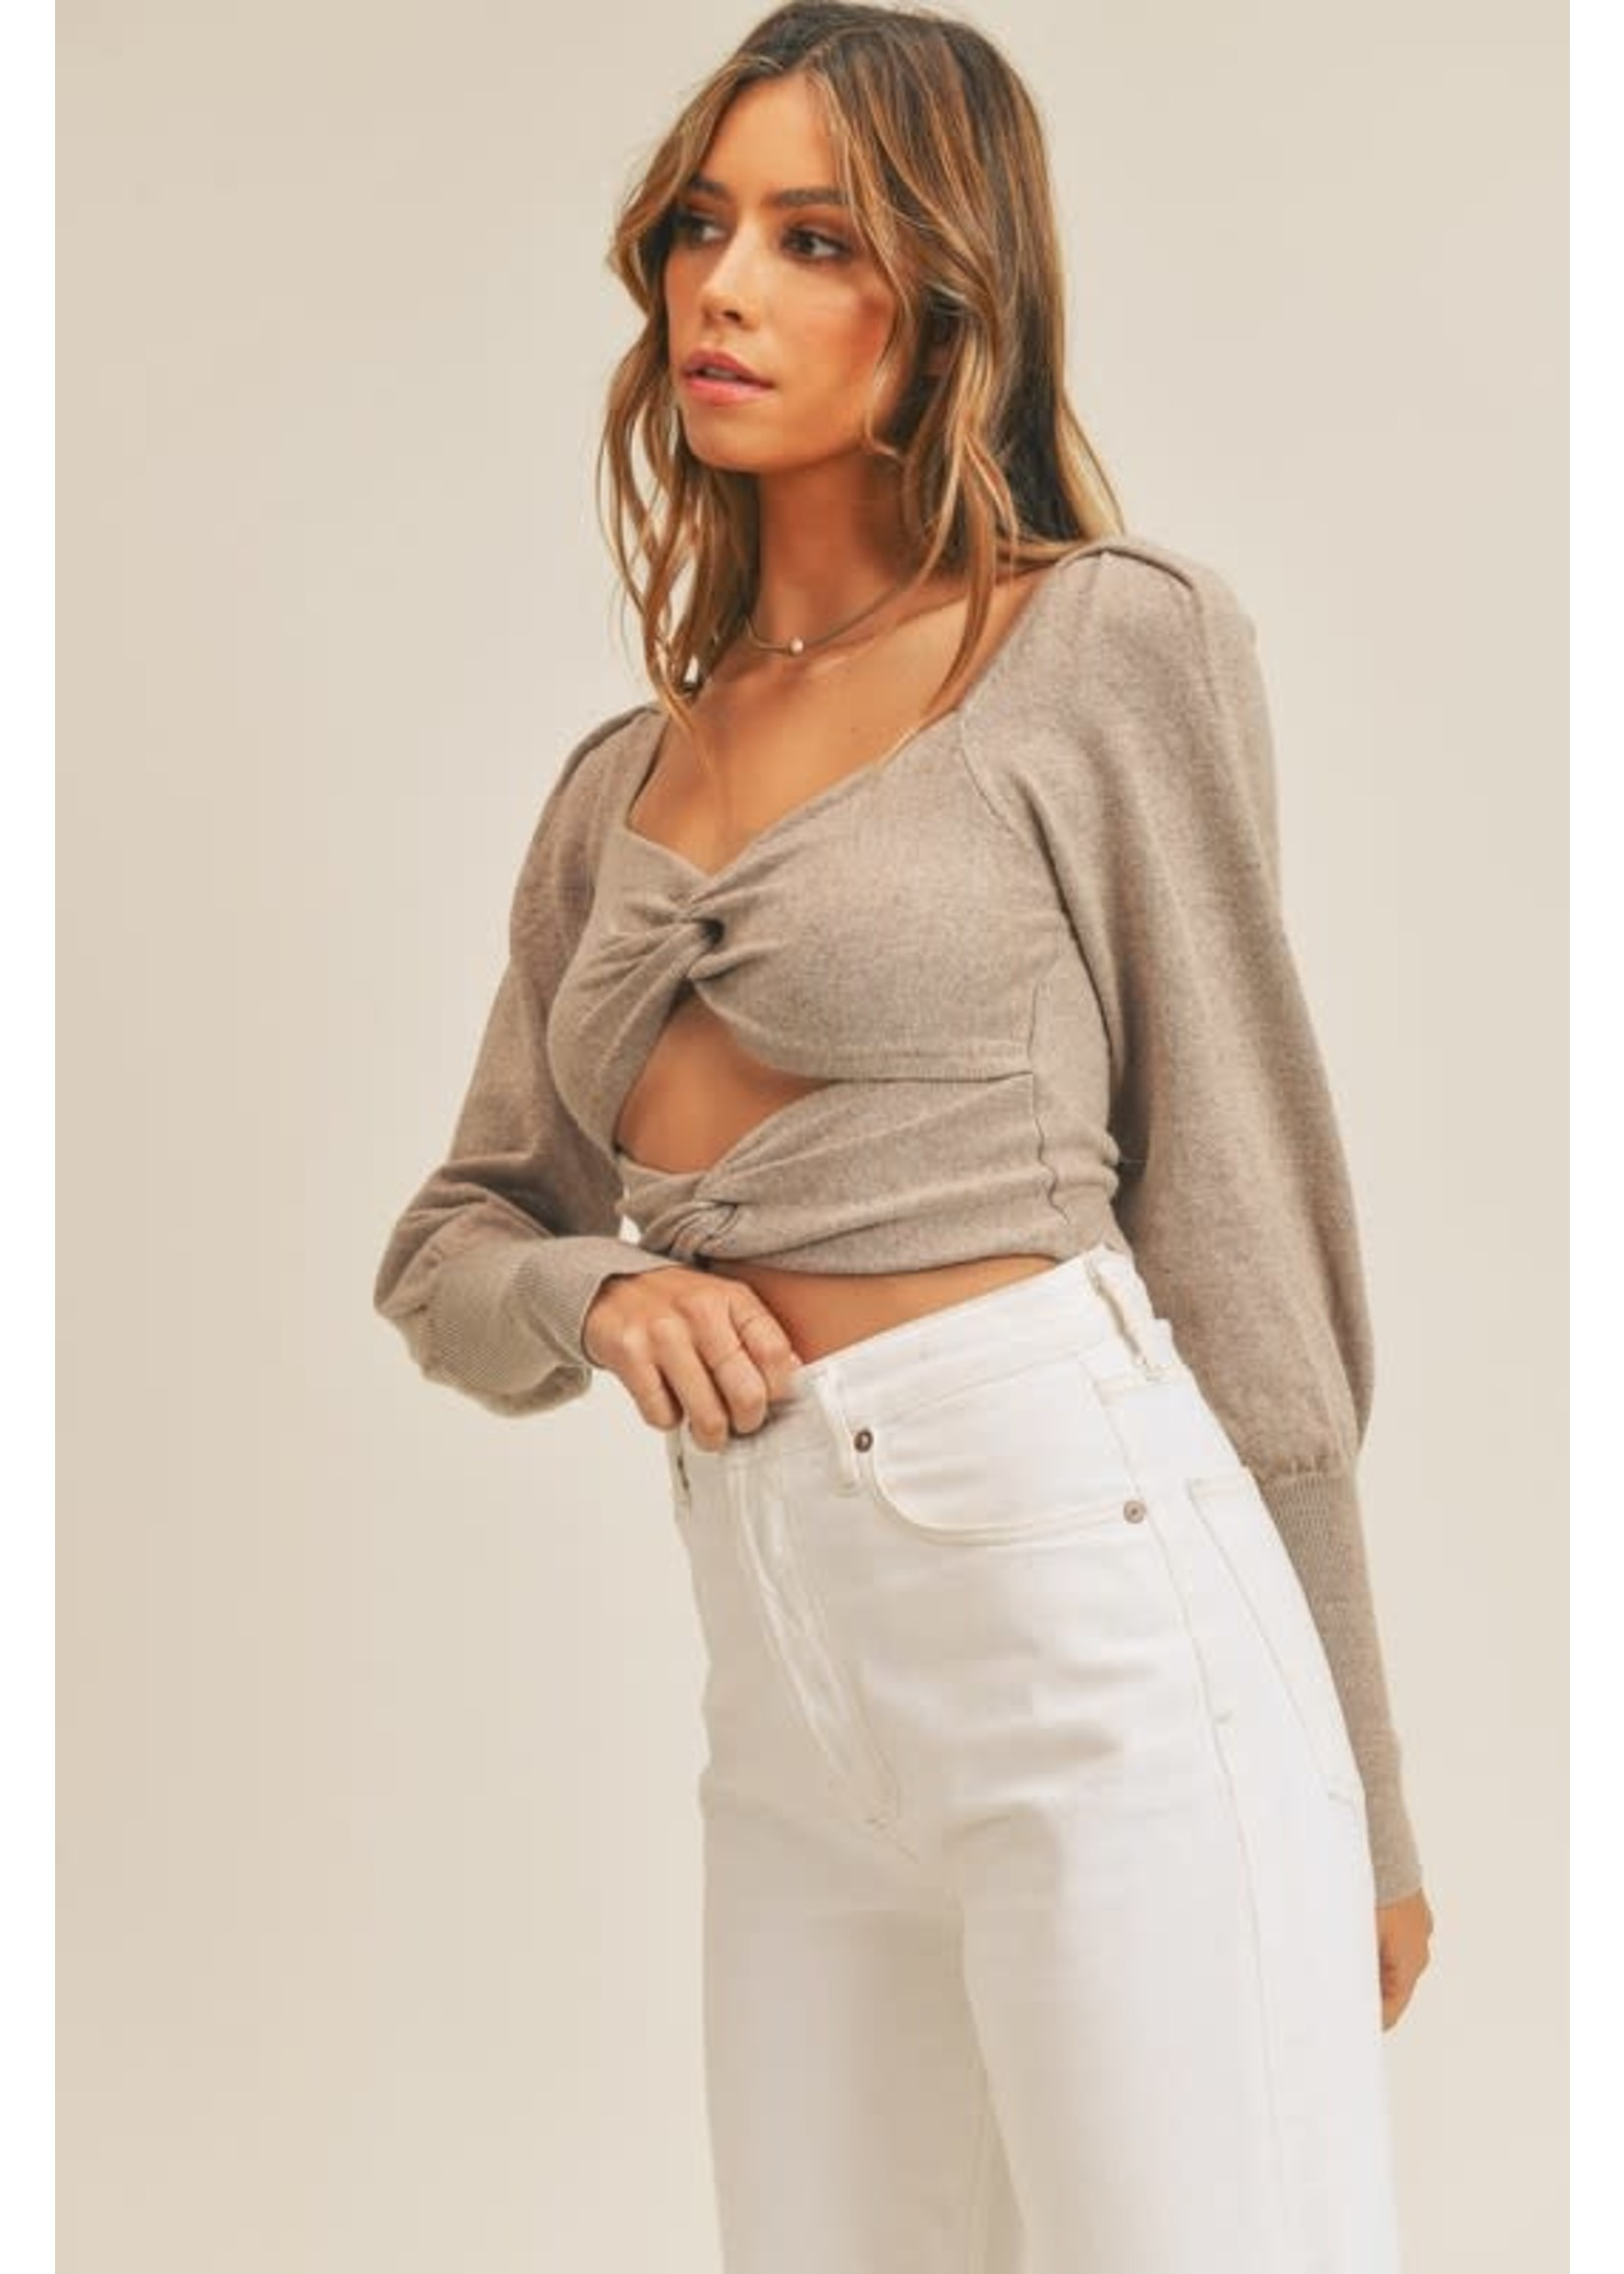 Mable Long Sleeved Cutout Front Twist Crop Top - MT1340